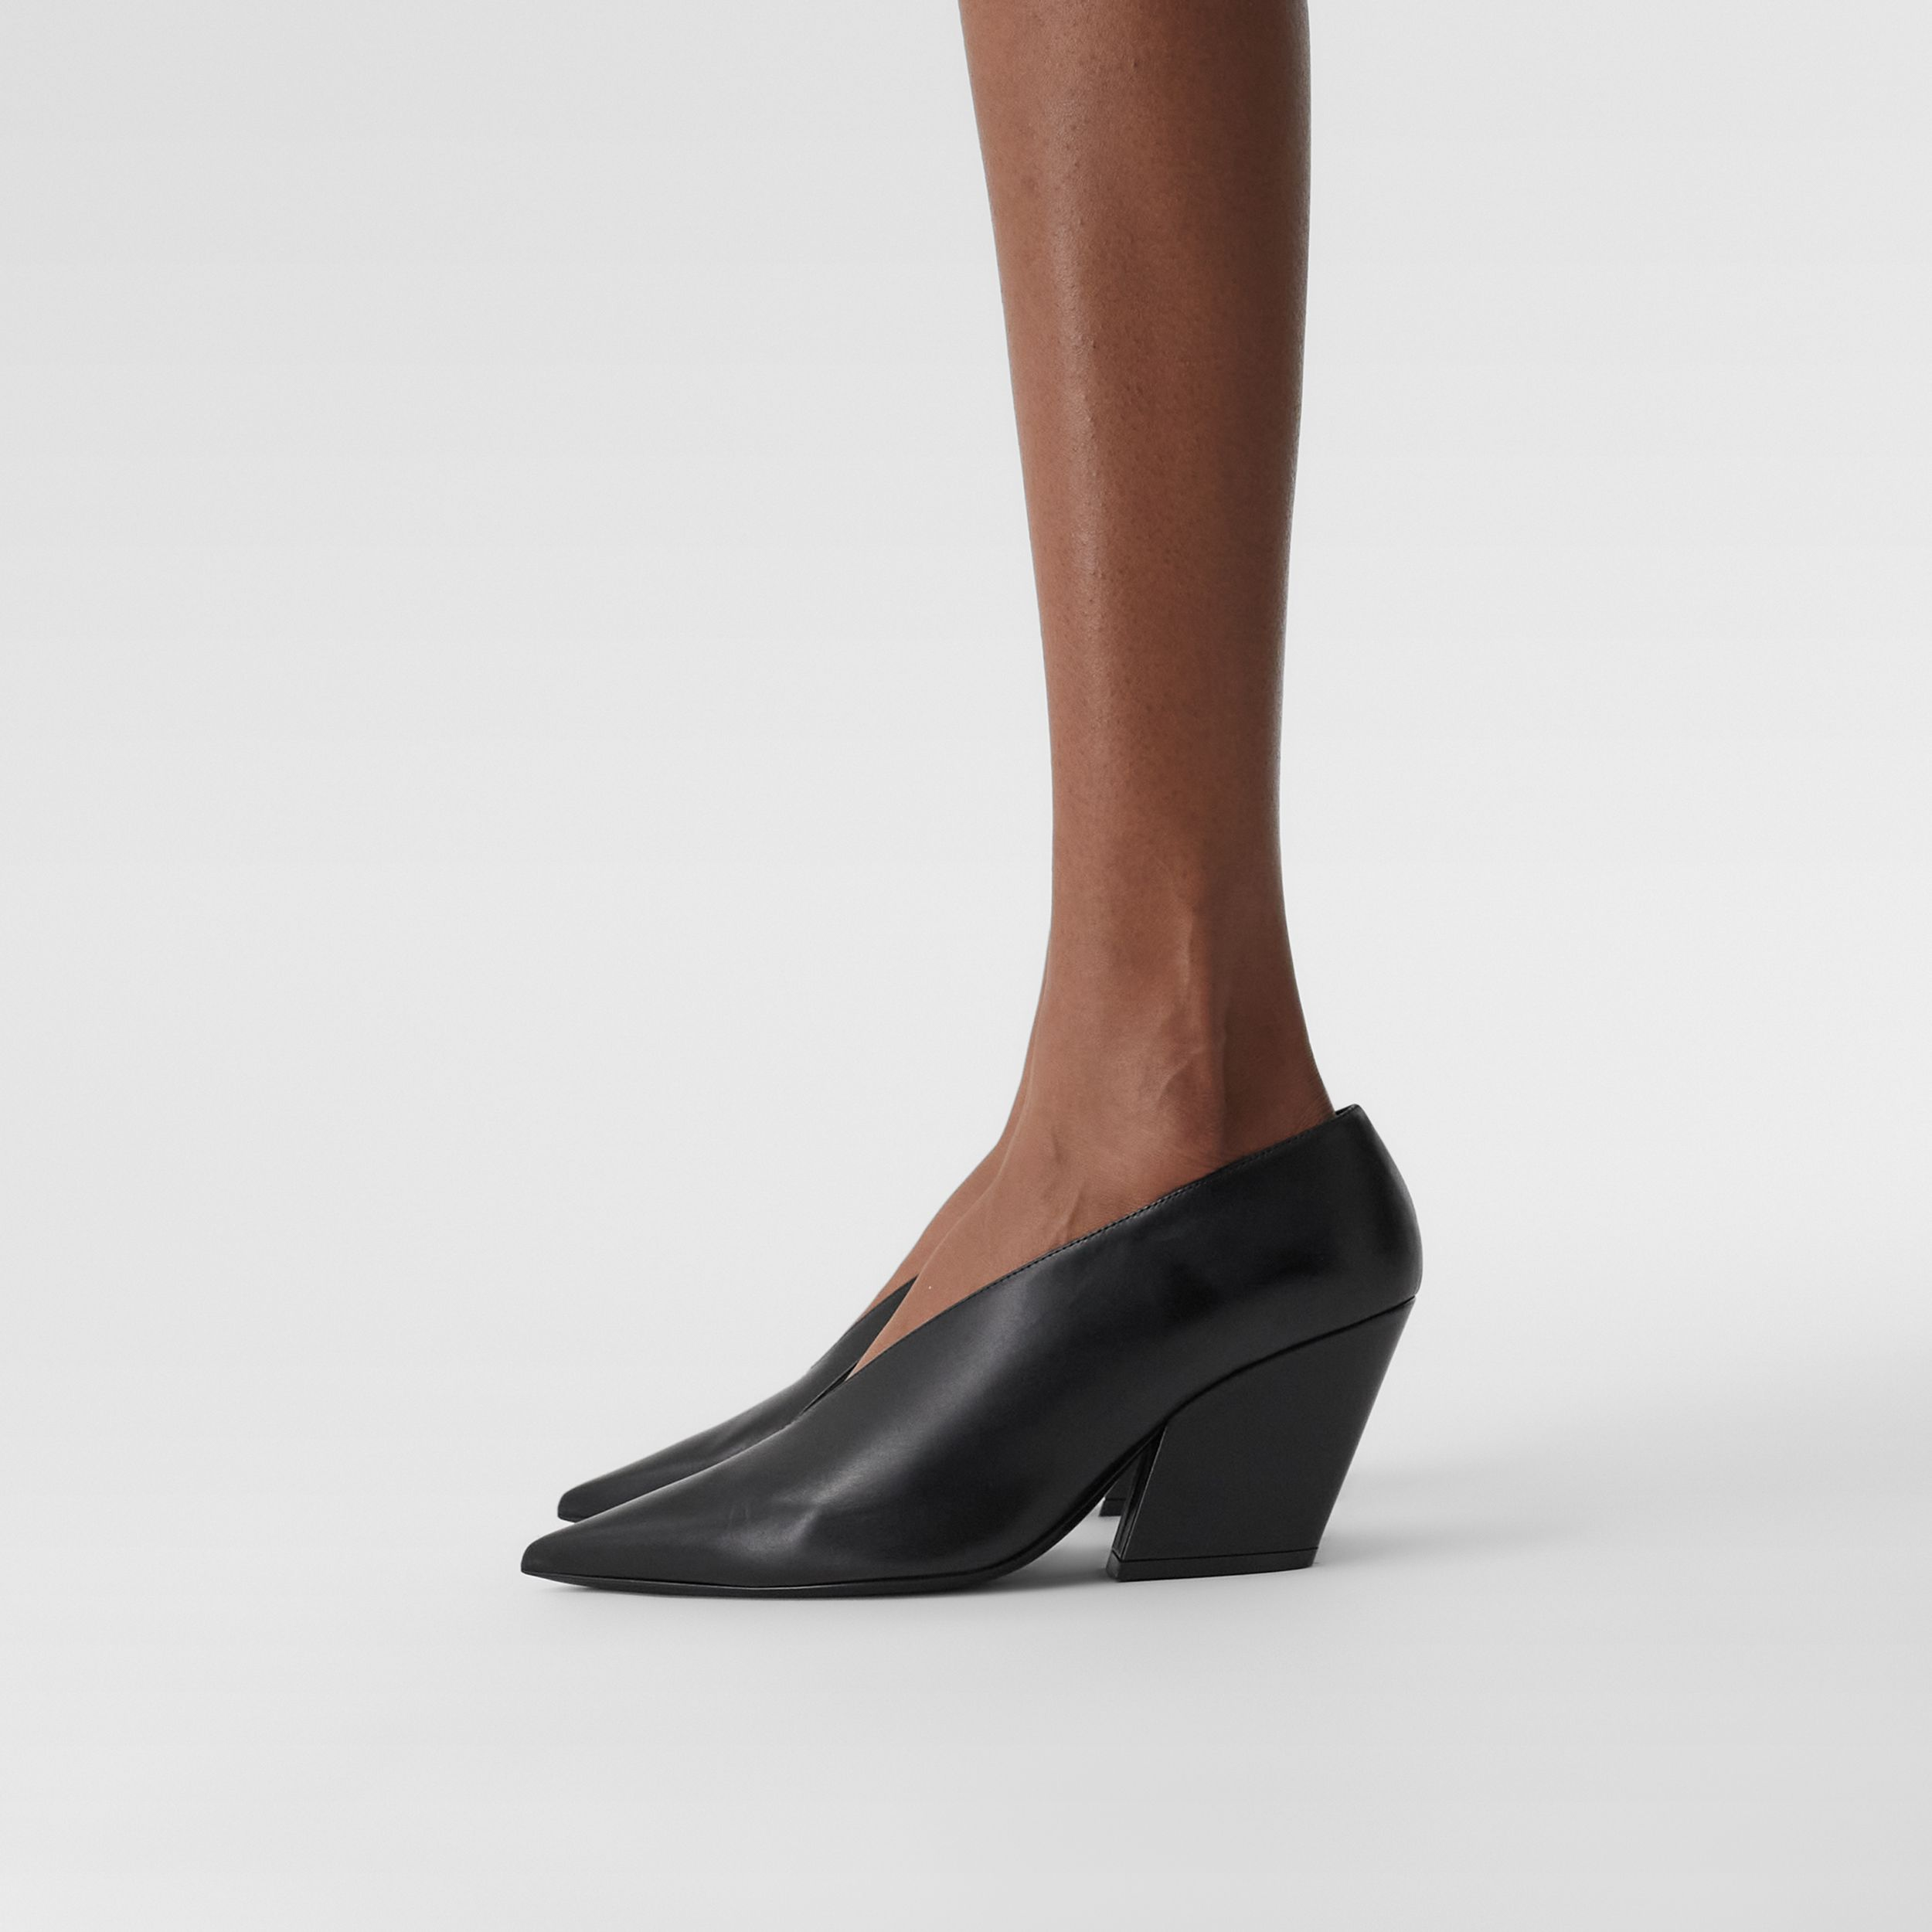 Leather Point-toe Pumps in Black - Women | Burberry Canada - 3